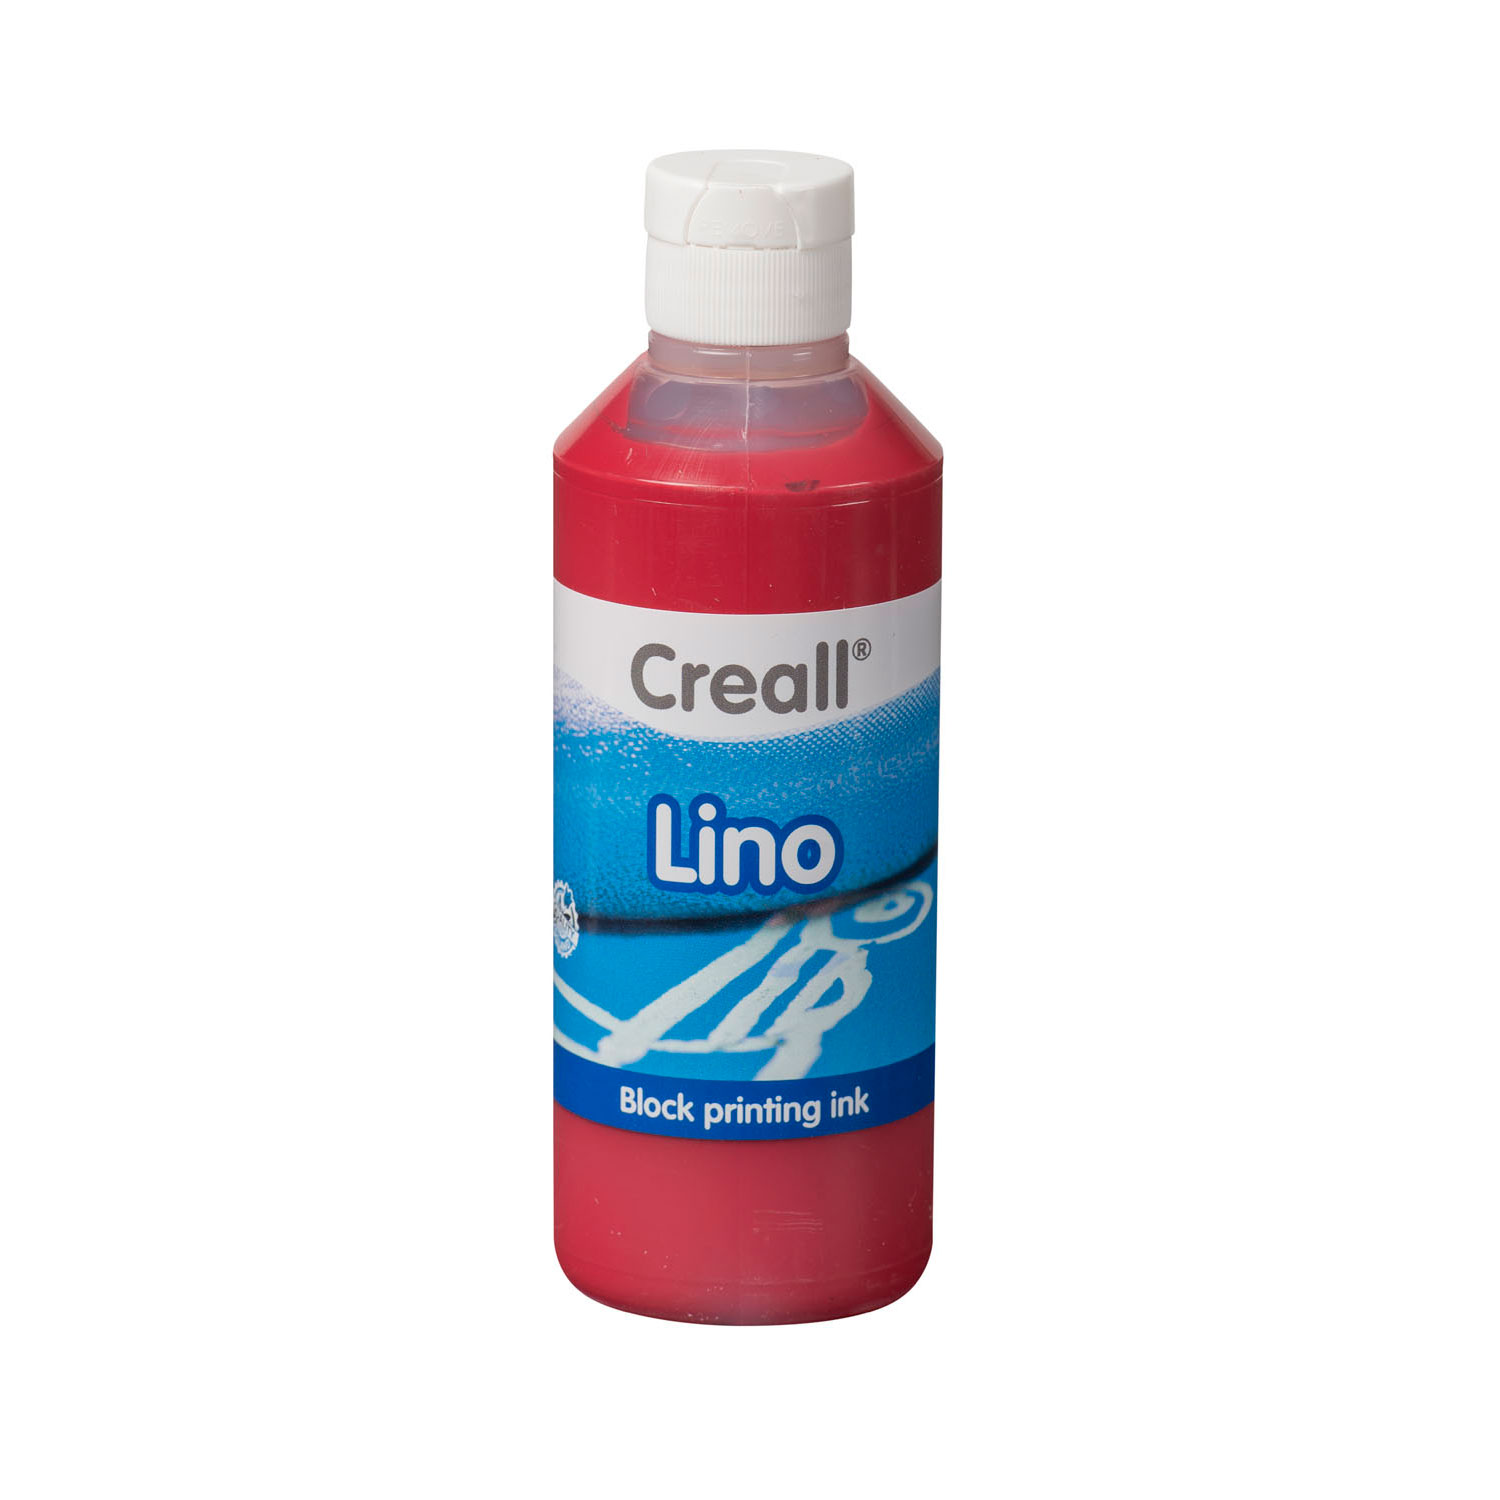 Creall Lino Blockprintverf Donkerrood, 250ml